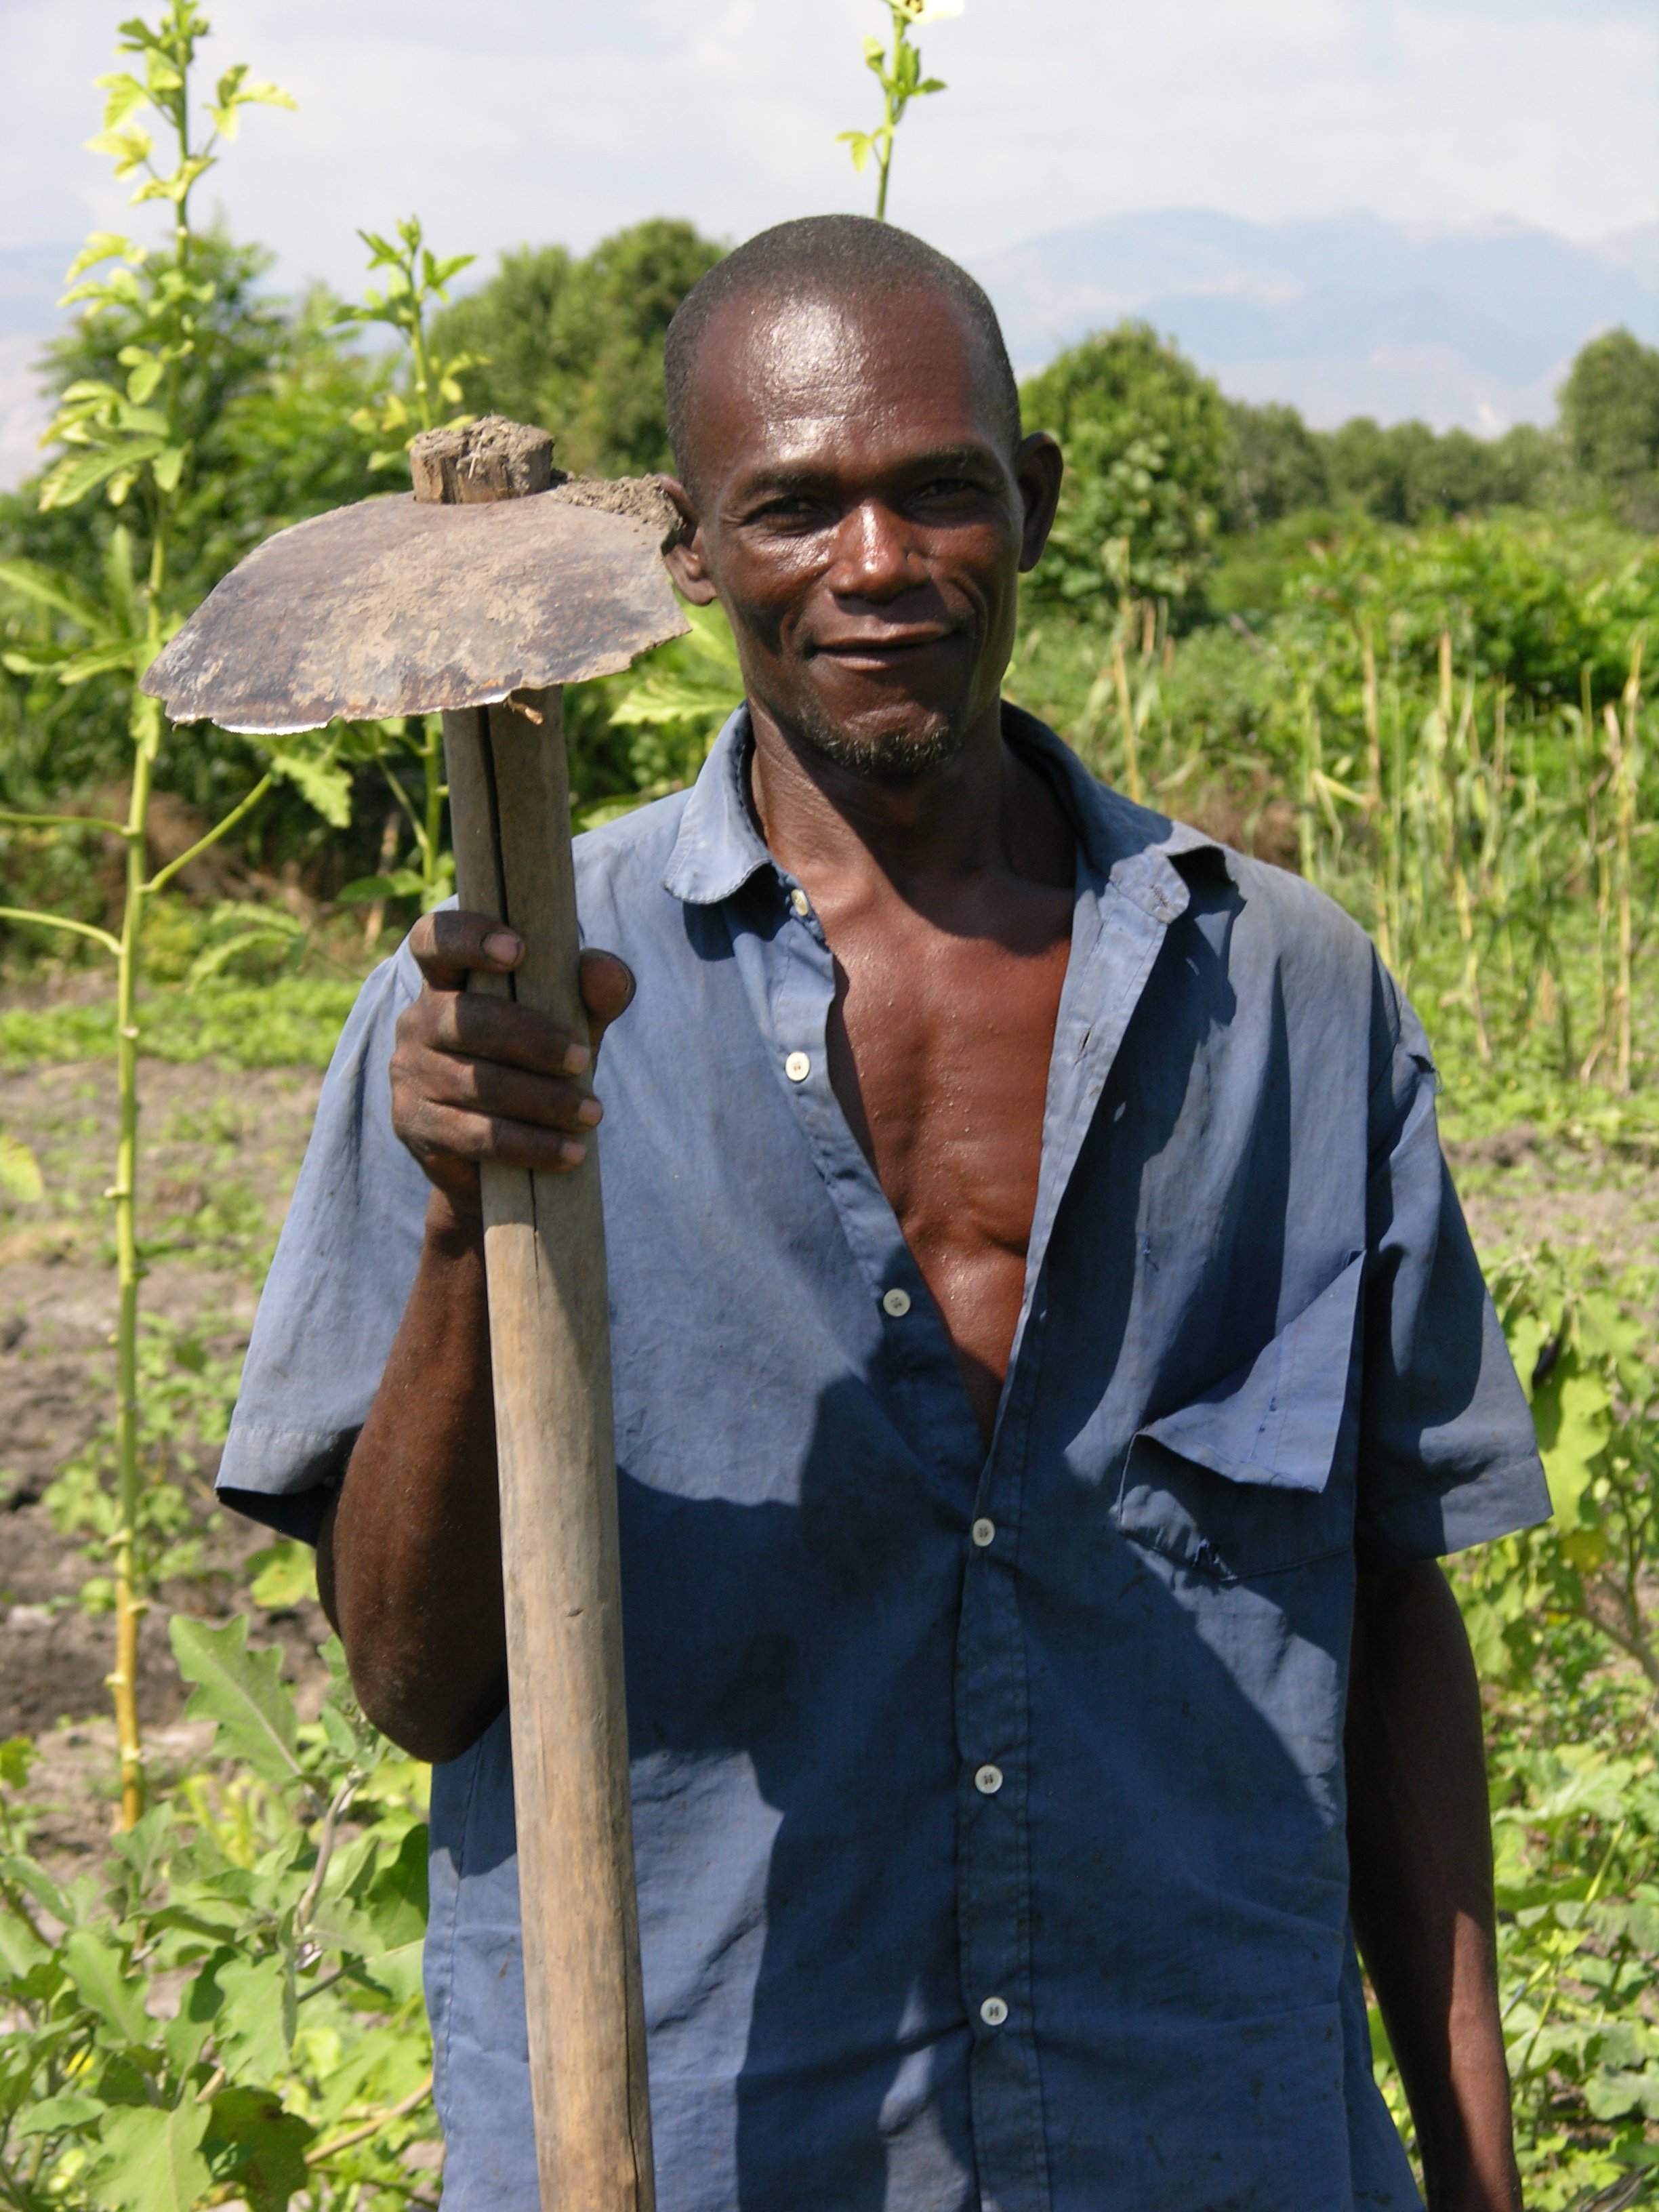 Haitian Farmer, during a visit to his fields by ECHO staff